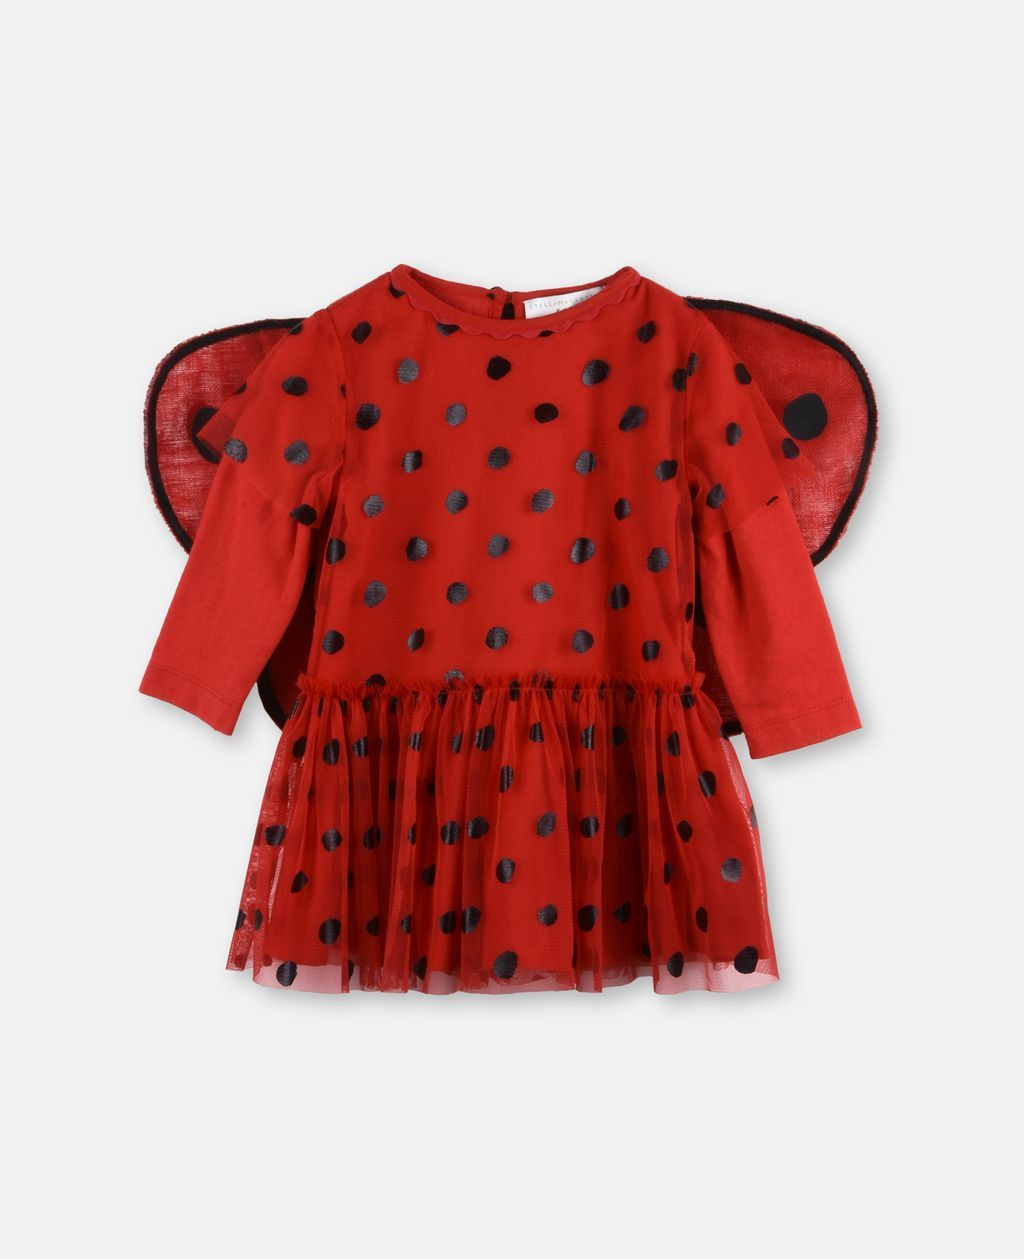 5bf954f70 Ladybug dress - STELLA MCCARTNEY KIDS | Baby Bee Shop | Stella ...